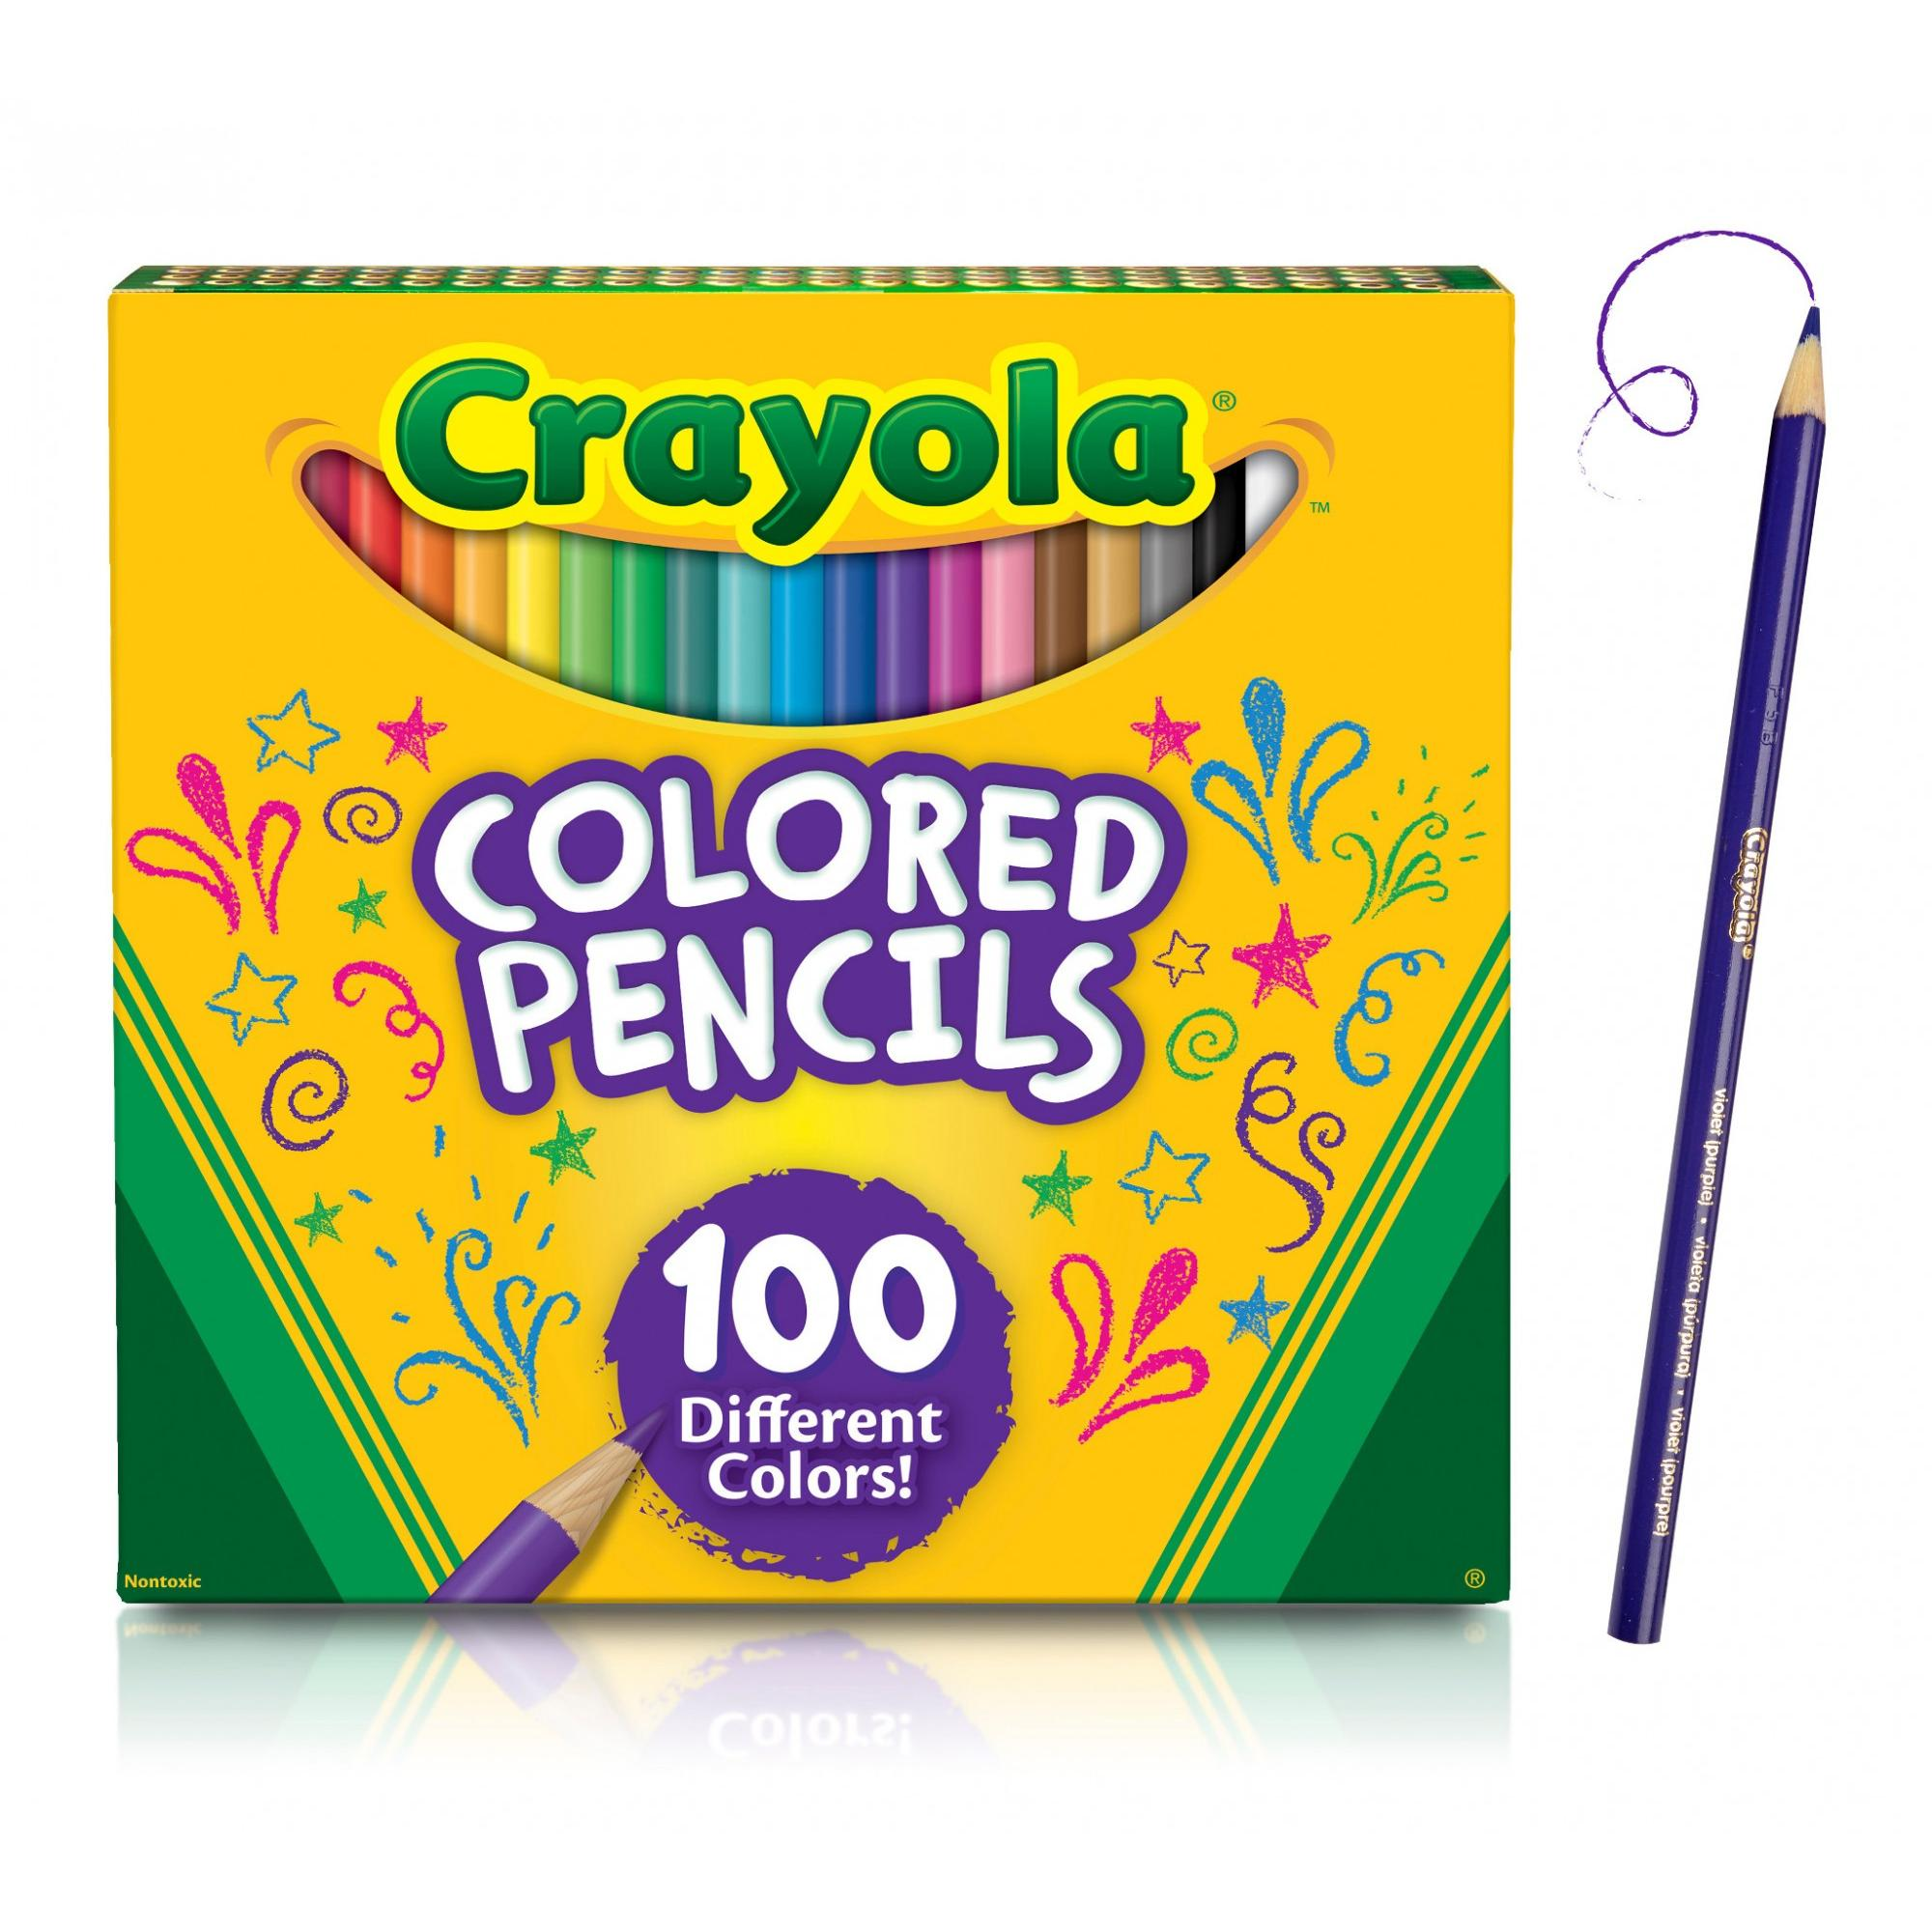 Crayola Colored Pencils Bulk Colored Pencils Great For Coloring